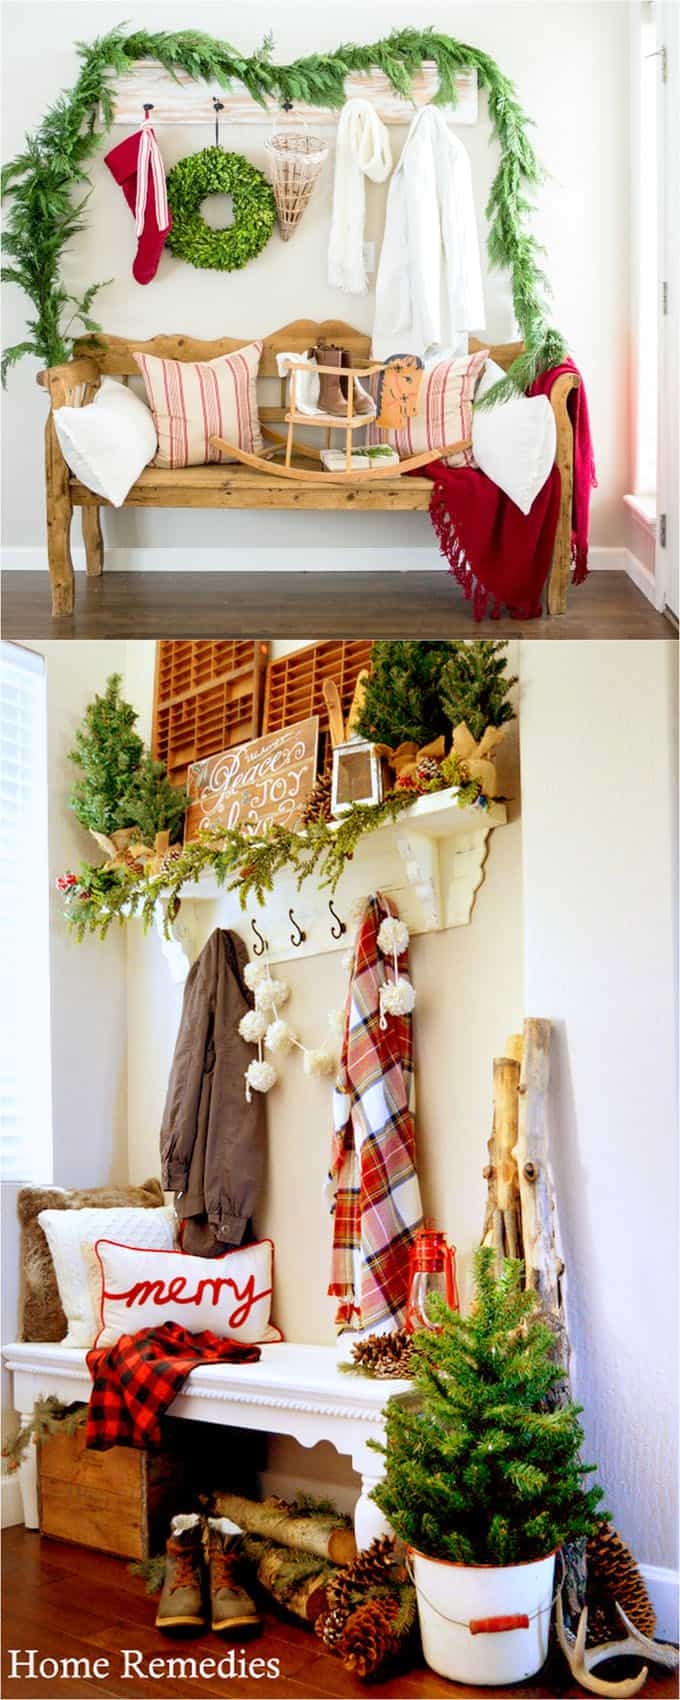 Simple ways to create a beautiful Christmas entryway  start with a bench or table add a few evergreen garlands and wreaths red and white pillows and ... & 100+ Favorite Christmas Decorating Ideas For Every Room in Your Home ...